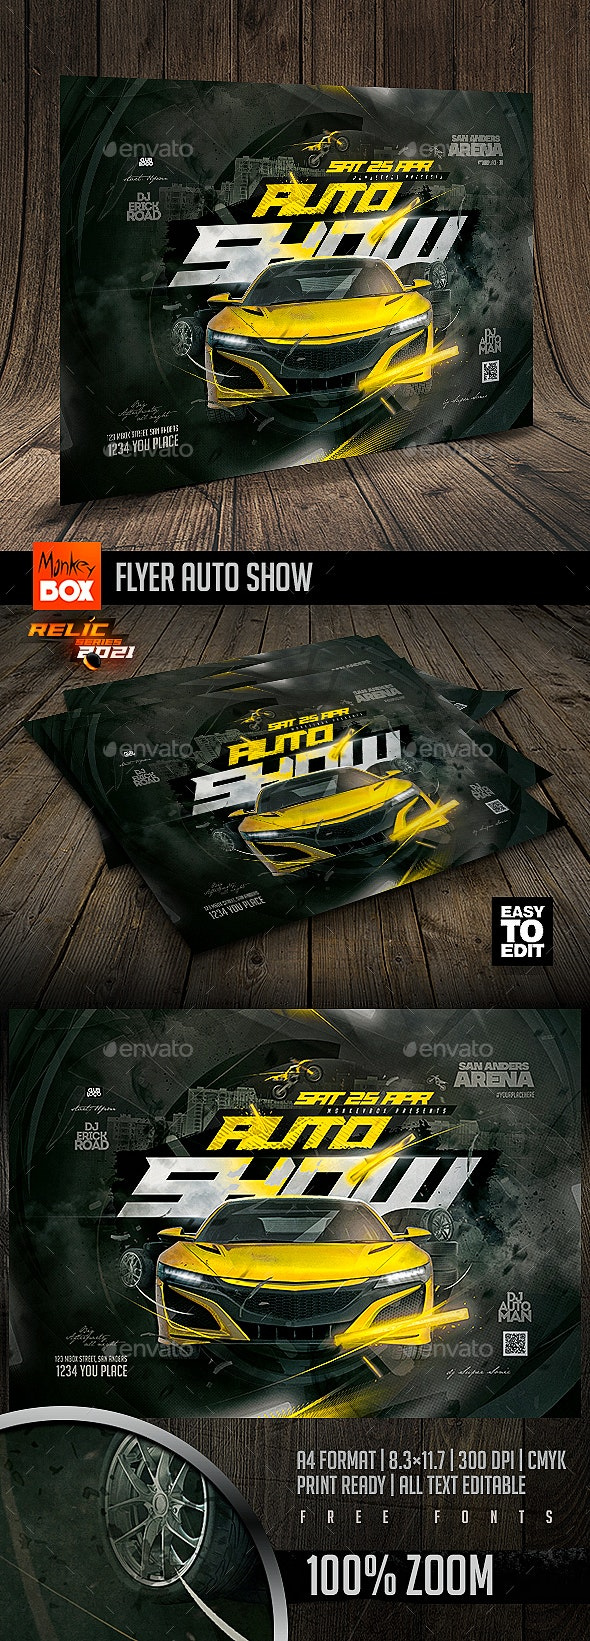 Flyer Auto Show - Events Flyers